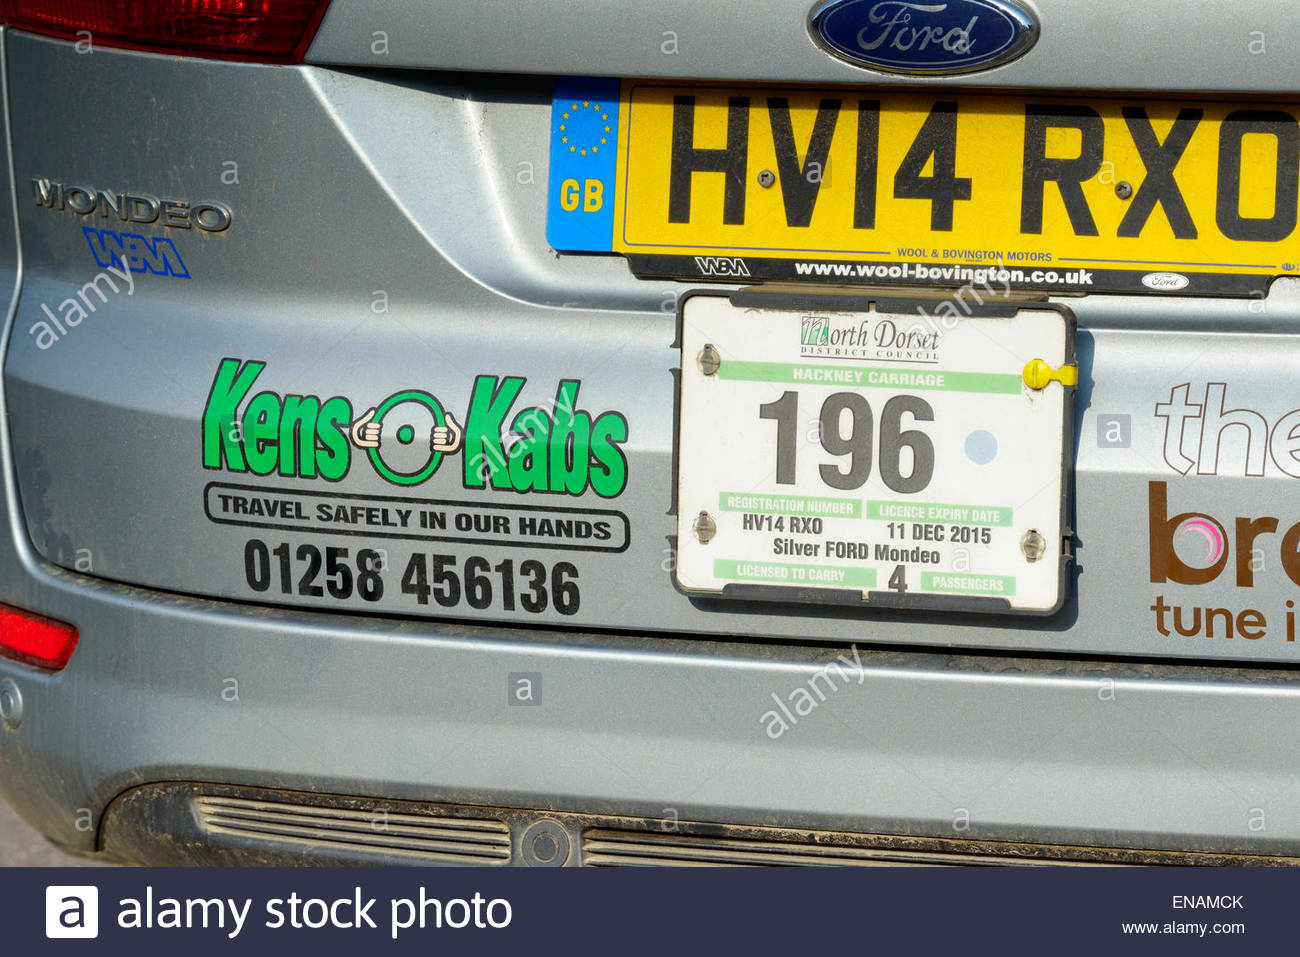 Hackney carriage plate on the back of local taxi cab, Blandford Forum, Dorset, England UK - Stock Image